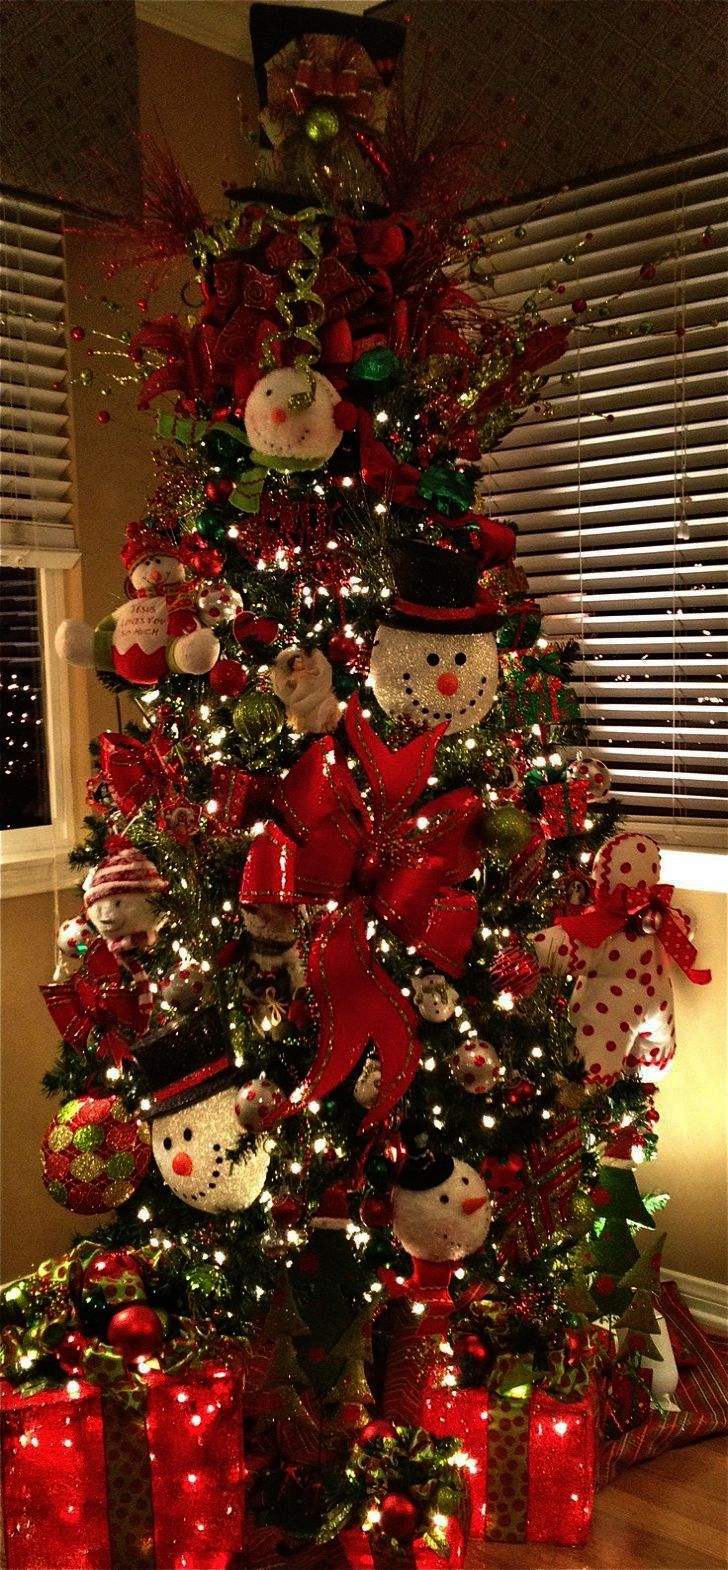 Pencil Christmas Trees On Clearance Christmas Trees For Sale Dc Some Black White Christmas Christmas Tree Themes Snowman Christmas Tree Christmas Decorations